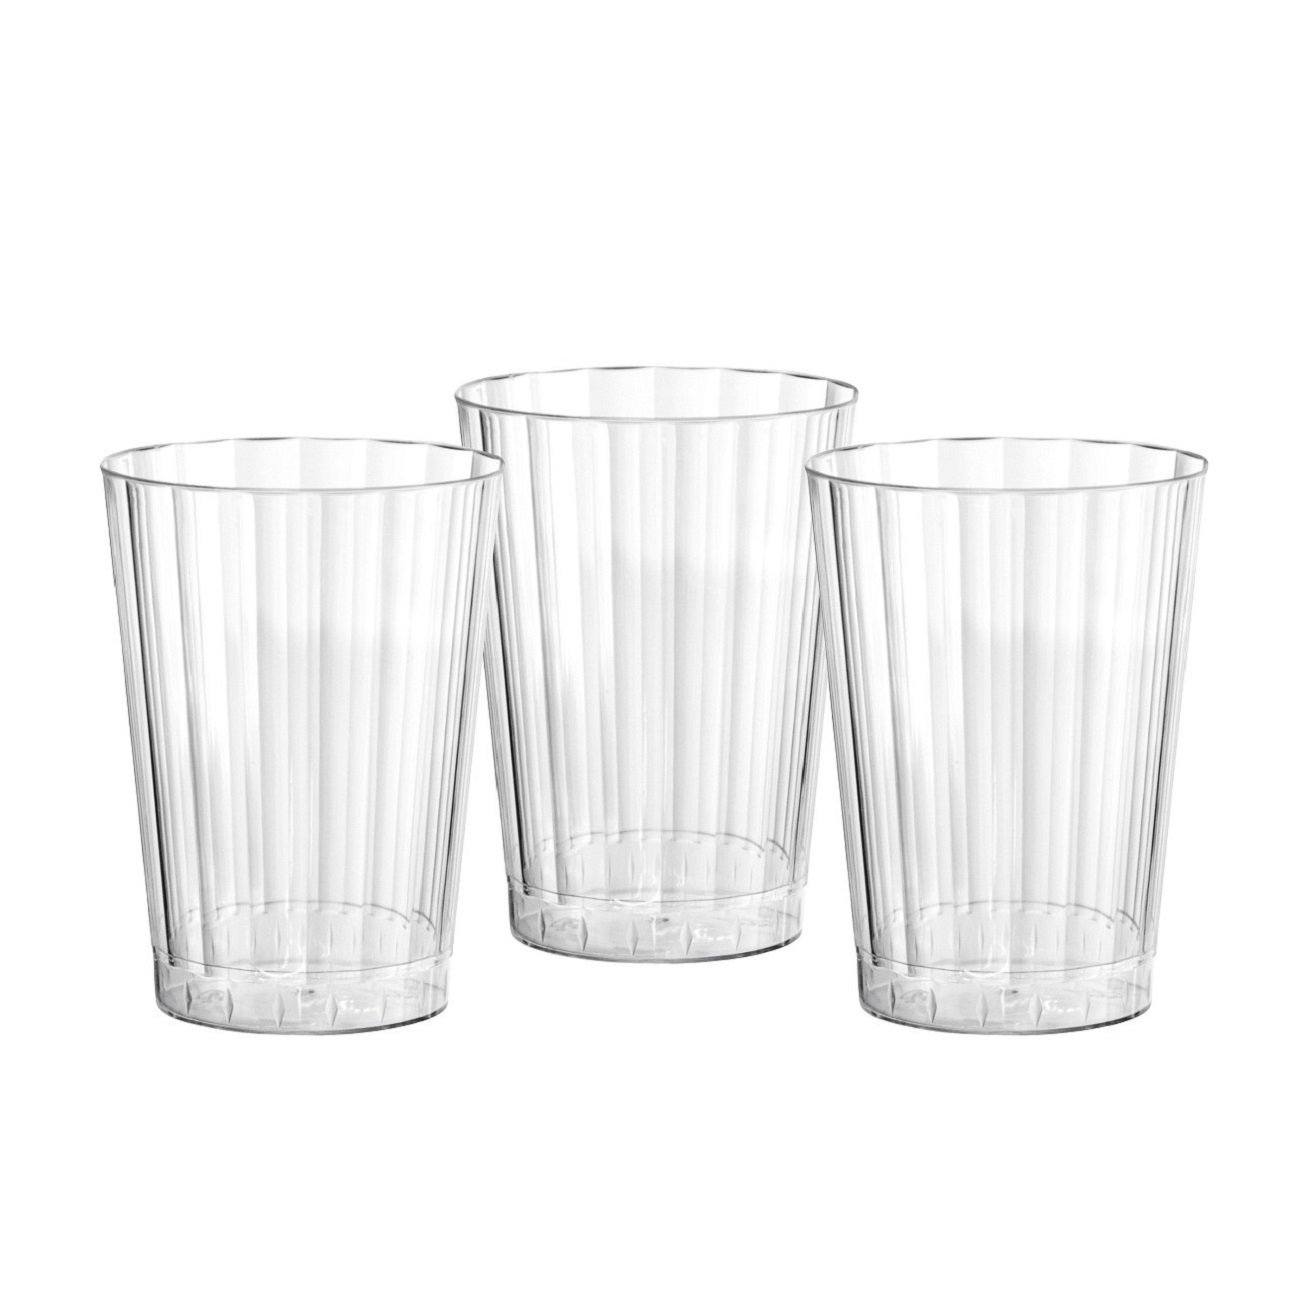 Party Essentials Deluxe/Elegance Hard Plastic 10-Ounce Party Cups/Tumblers, 20-Count, Clear by Party Essentials